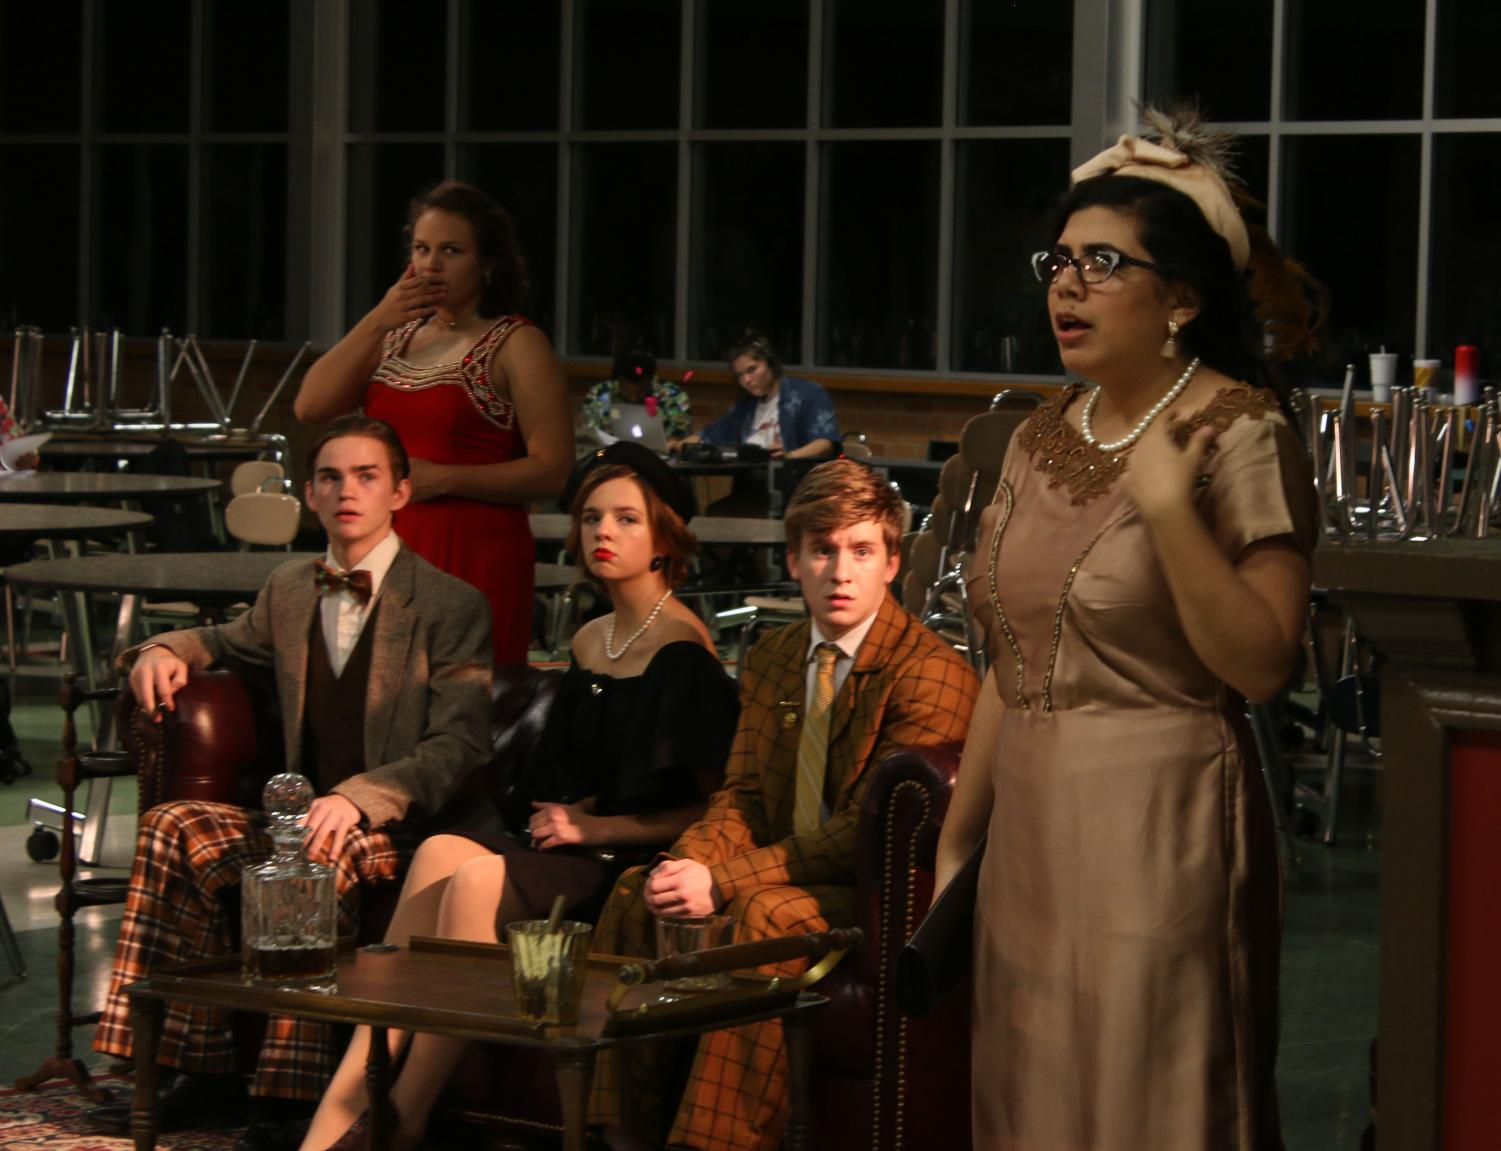 Mrs. Peacock, played by senior Gloria Adame, reacts to shocking news while the rest of the characters look on.